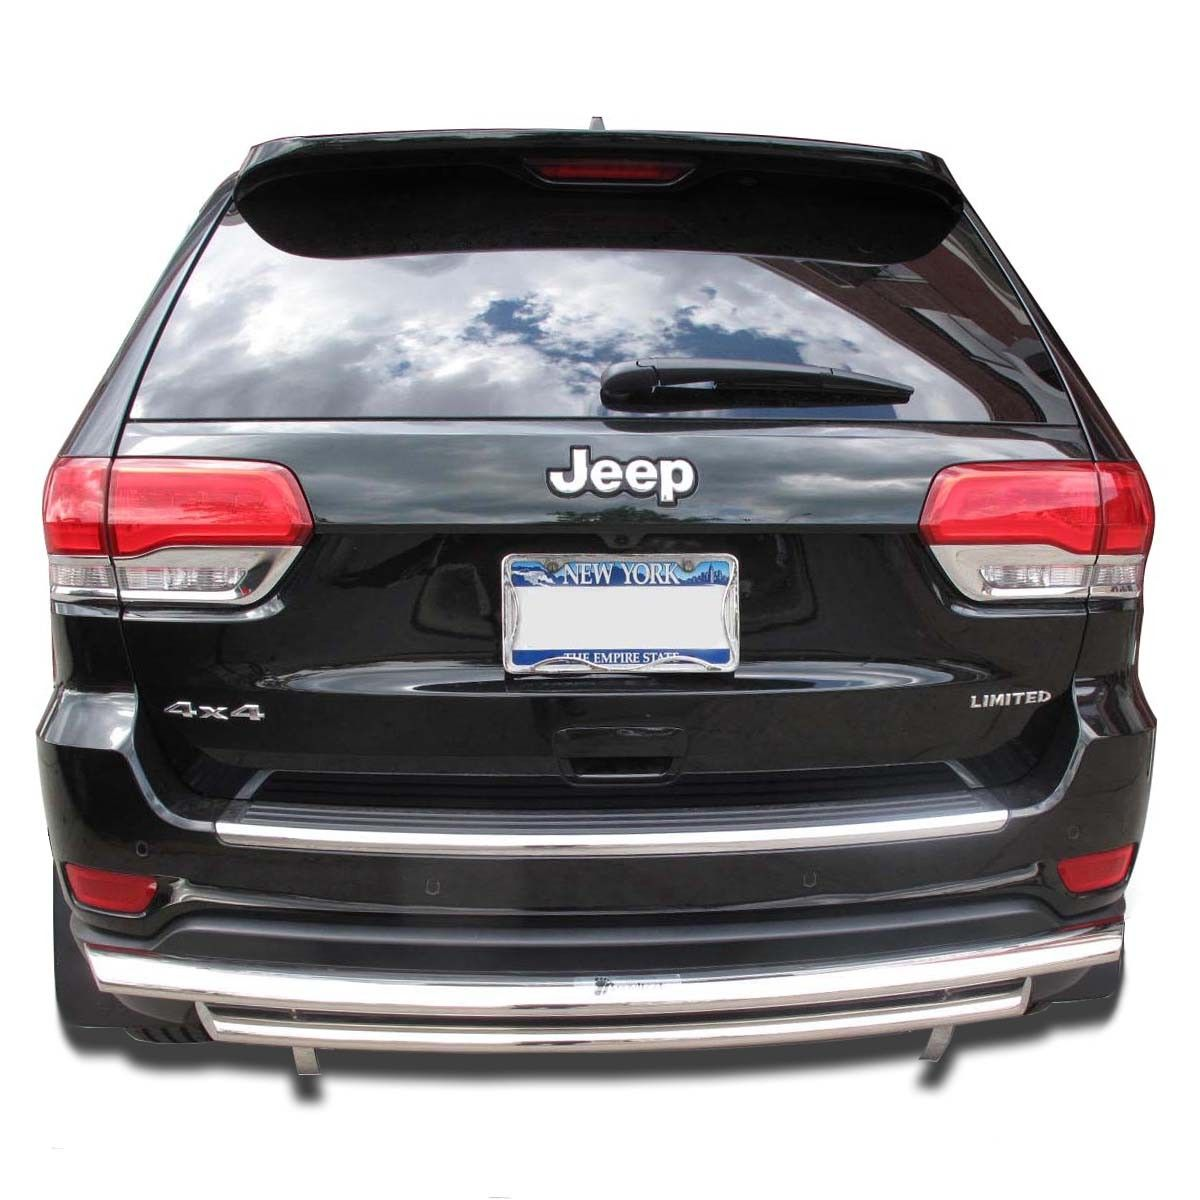 Rear Bumper Guard On Jeep Grand Cherokee Jeep Grand Cherokee Jeep Bumpers